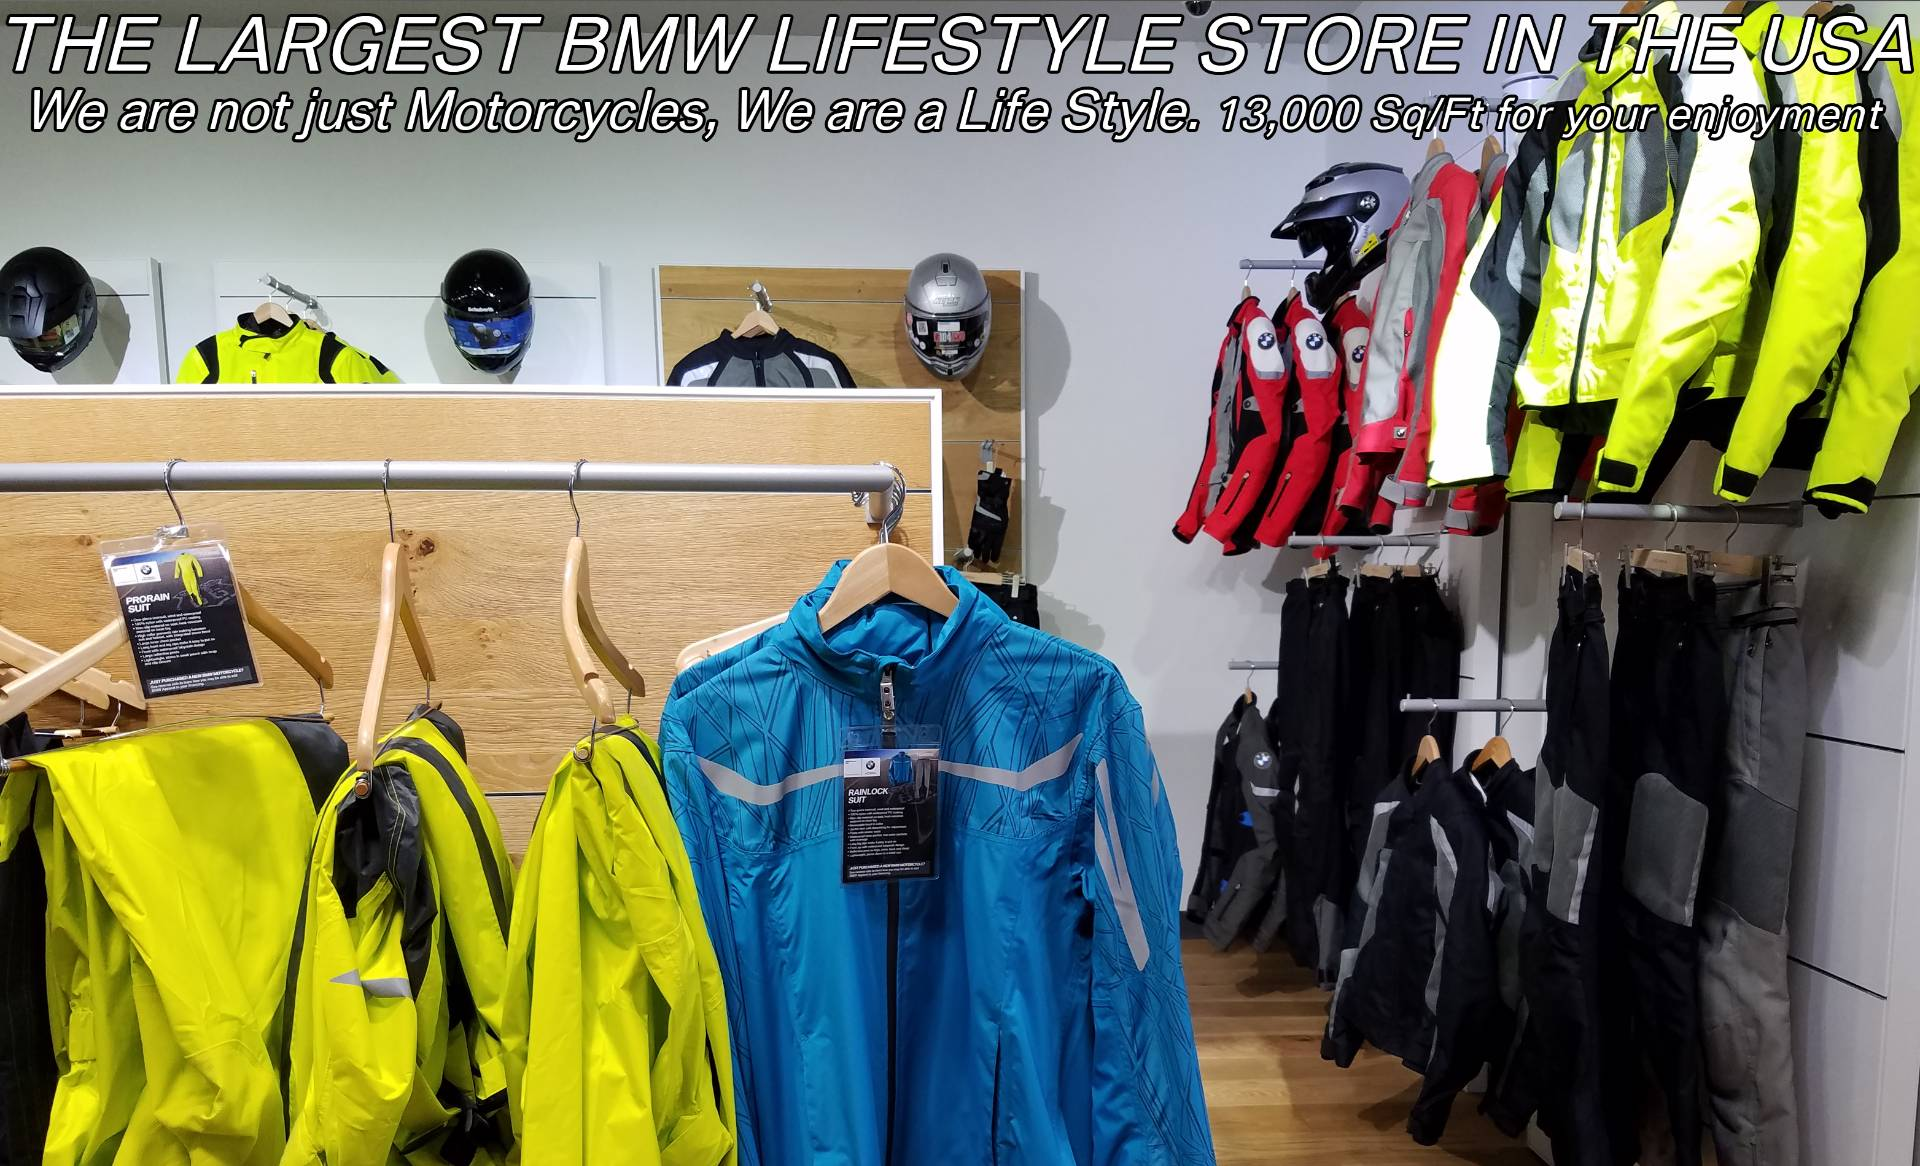 New 2019 BMW G 310 GS for sale, BMW G 310GS for sale, BMW Motorcycle GS, new BMW GS, Spirit of GS, BMW Motorcycles of Miami, Motorcycles of Miami, Motorcycles Miami, New Motorcycles, Used Motorcycles, pre-owned. #BMWMotorcyclesOfMiami #MotorcyclesOfMiami. - Photo 33